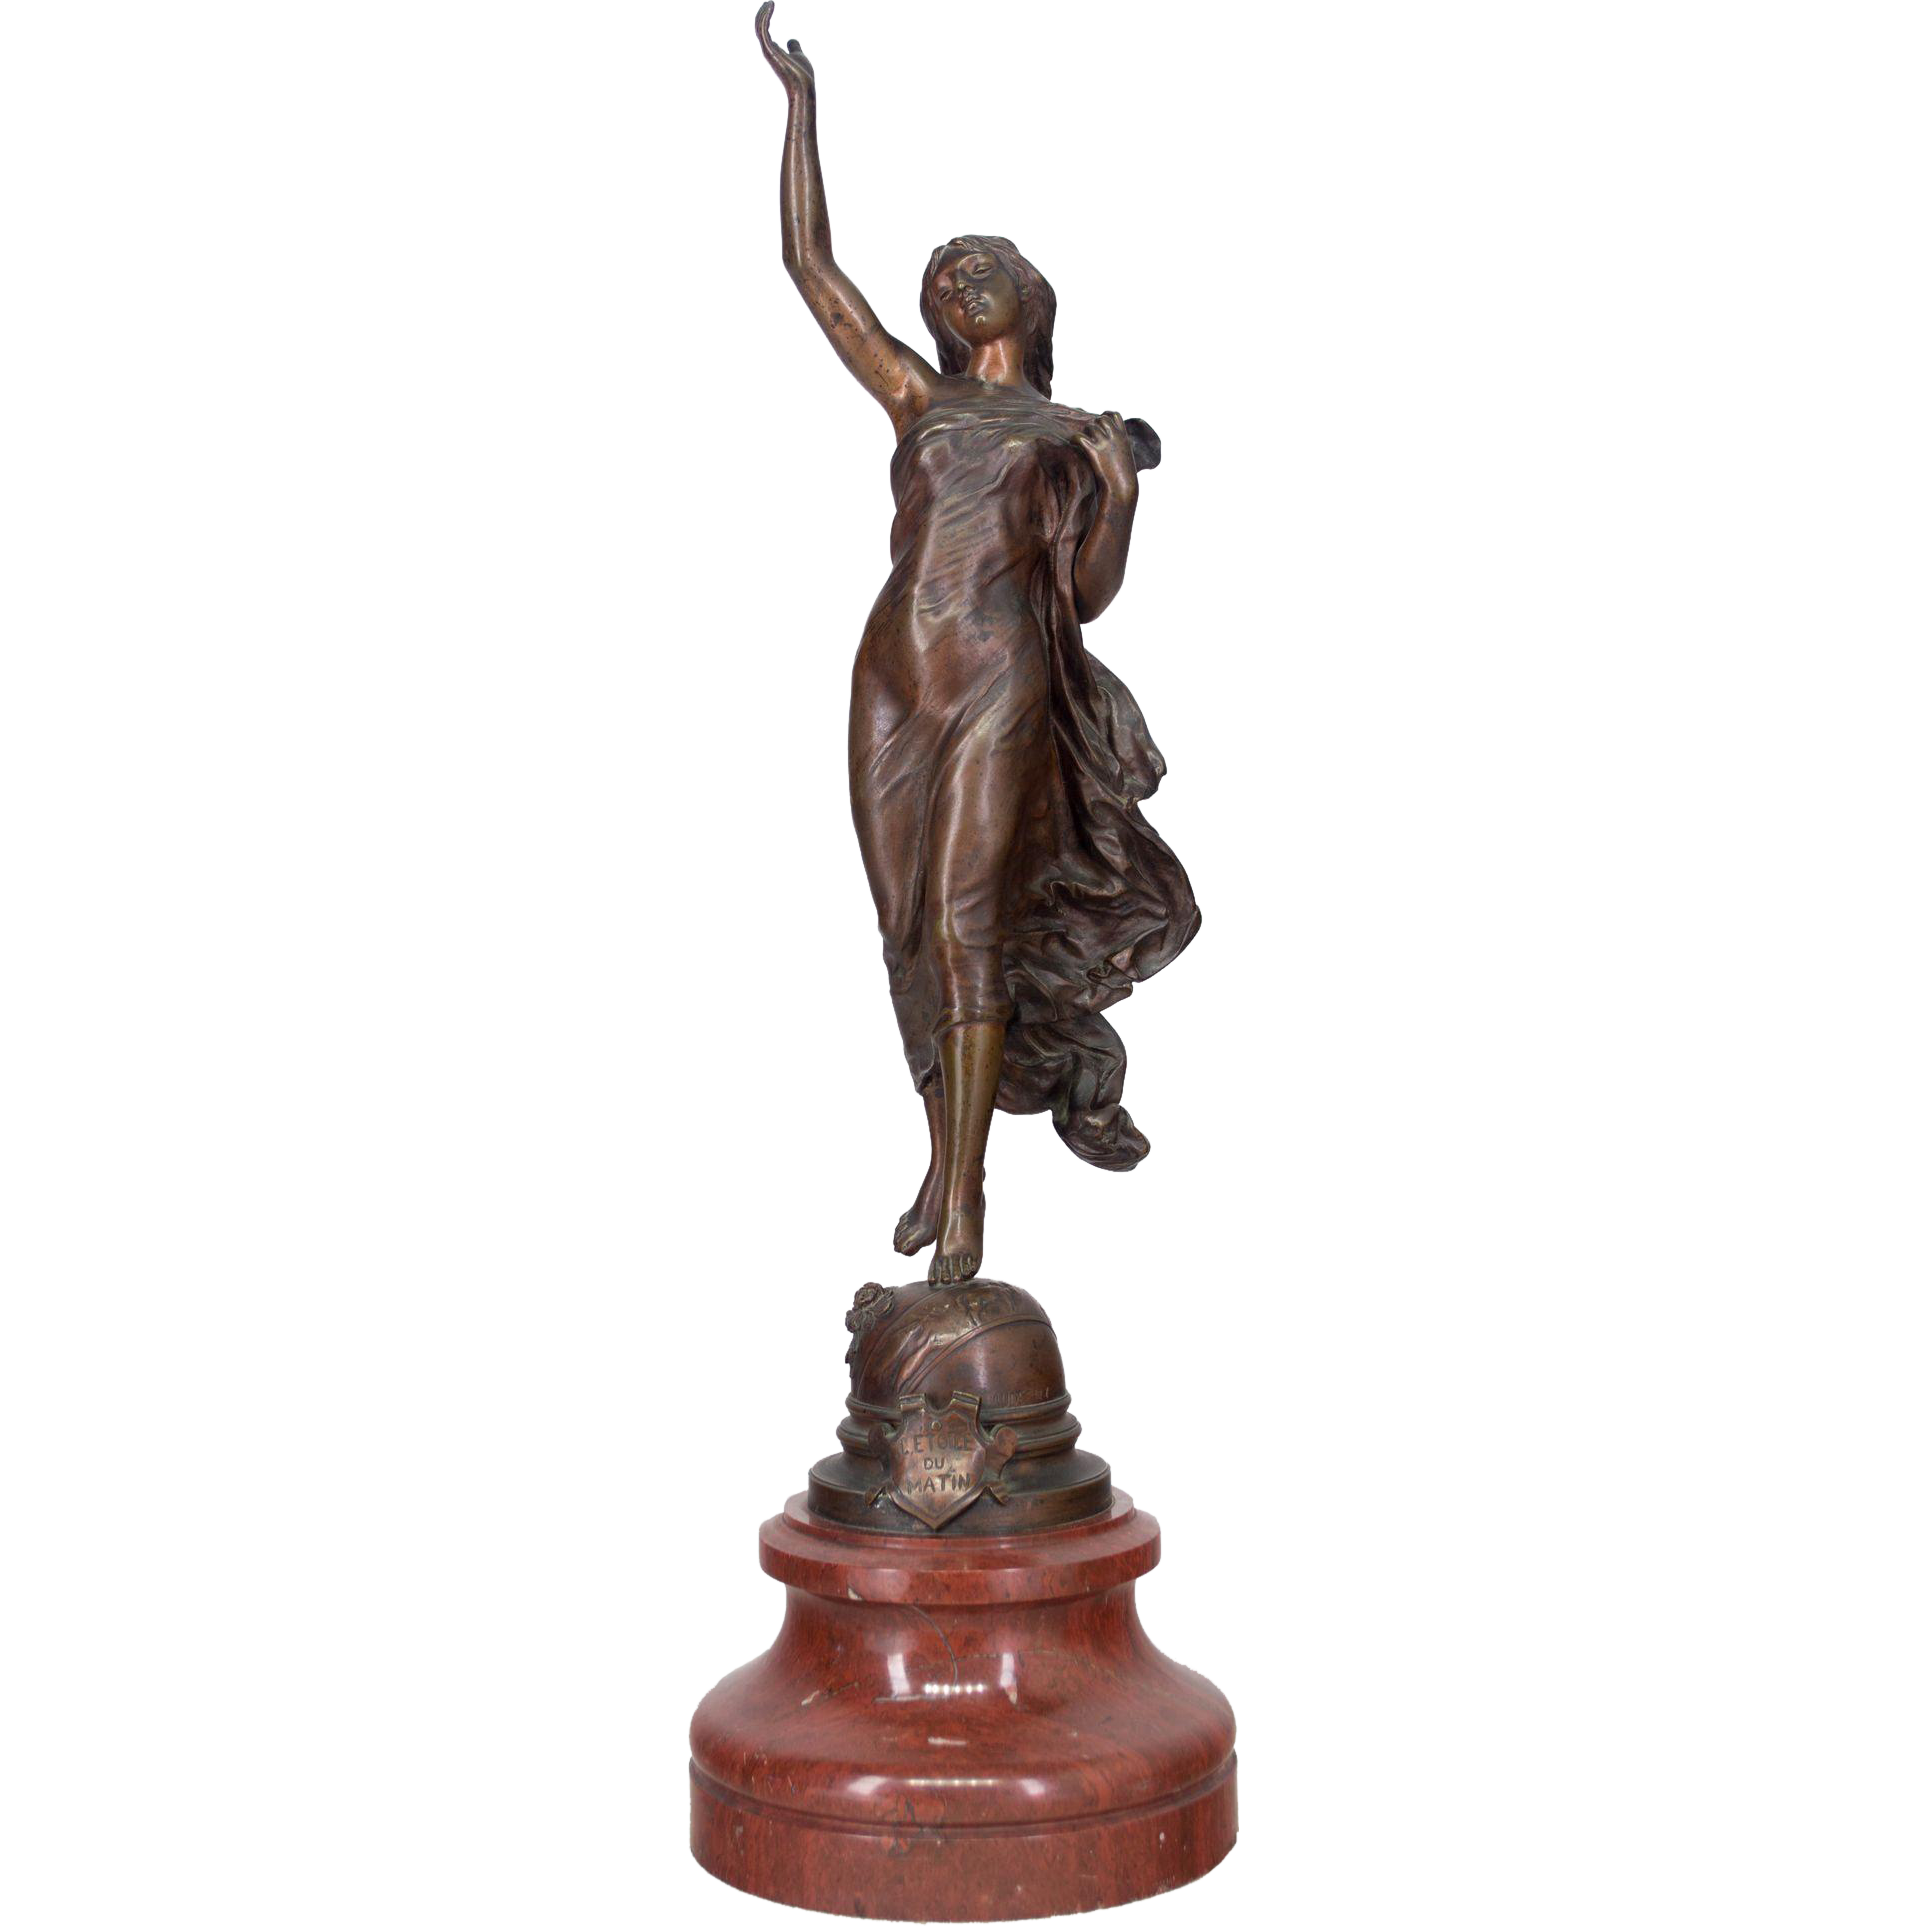 19th c. French Bronze Sculpture